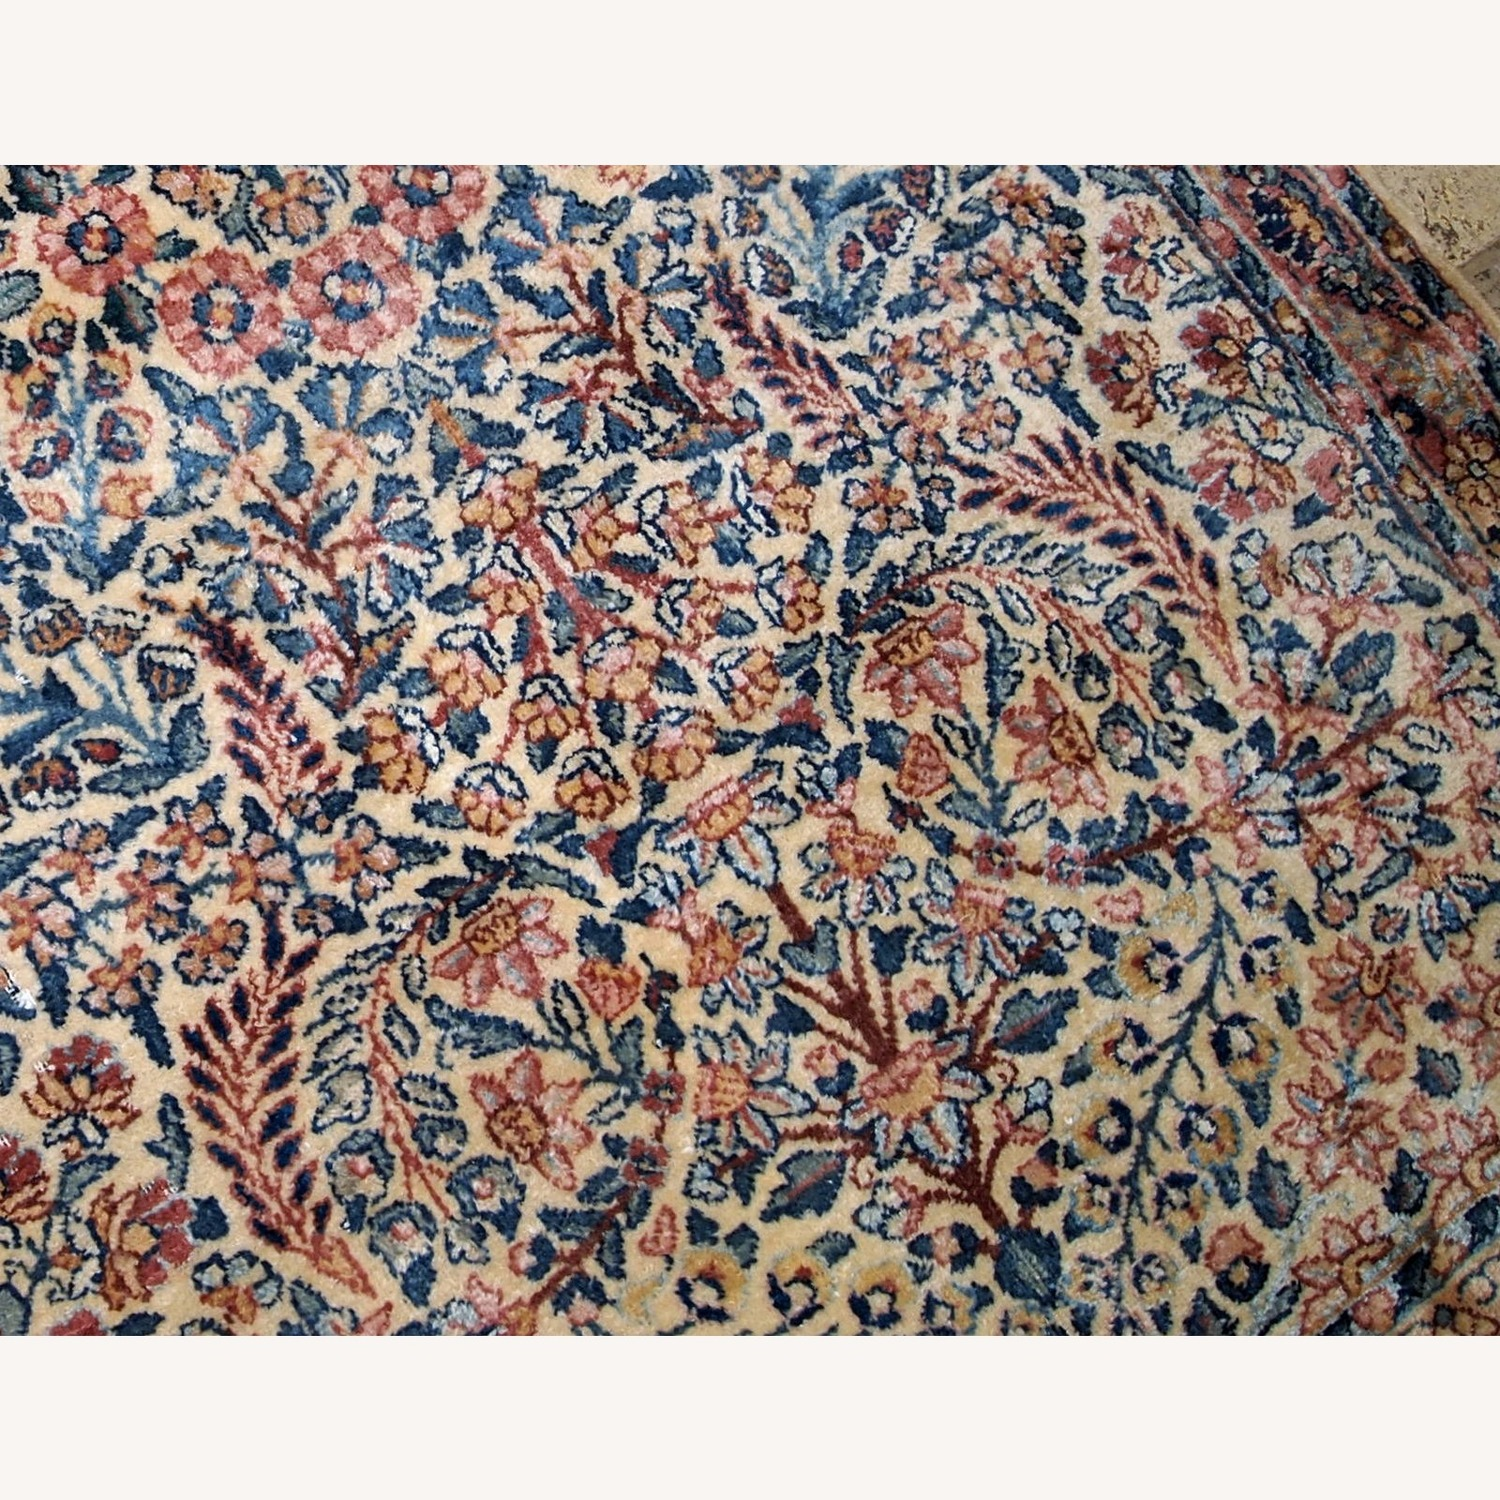 Handmade Antique Persian Kerman Rug - image-2